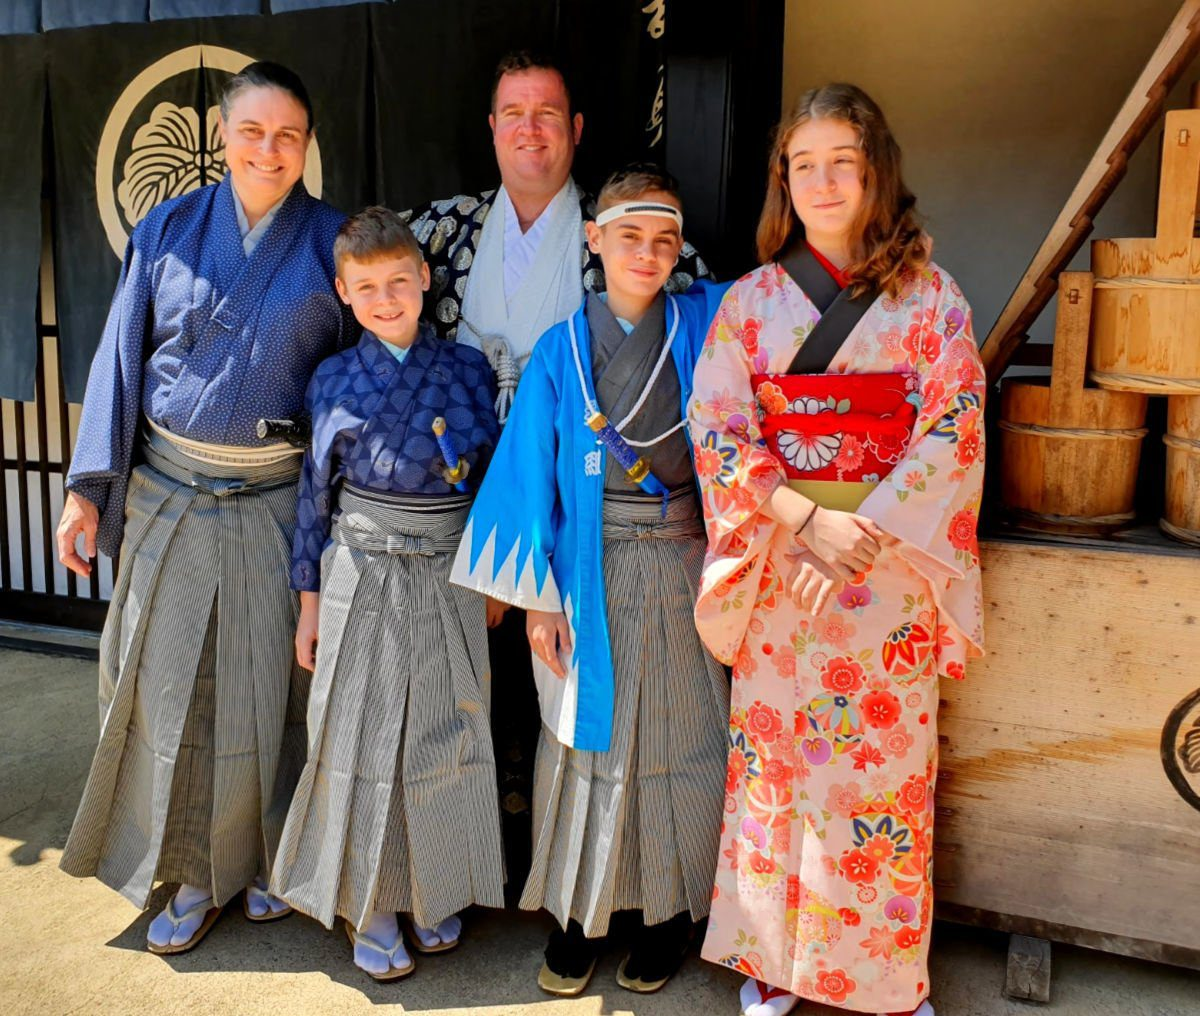 Edo Wonderland Family in Kimonos